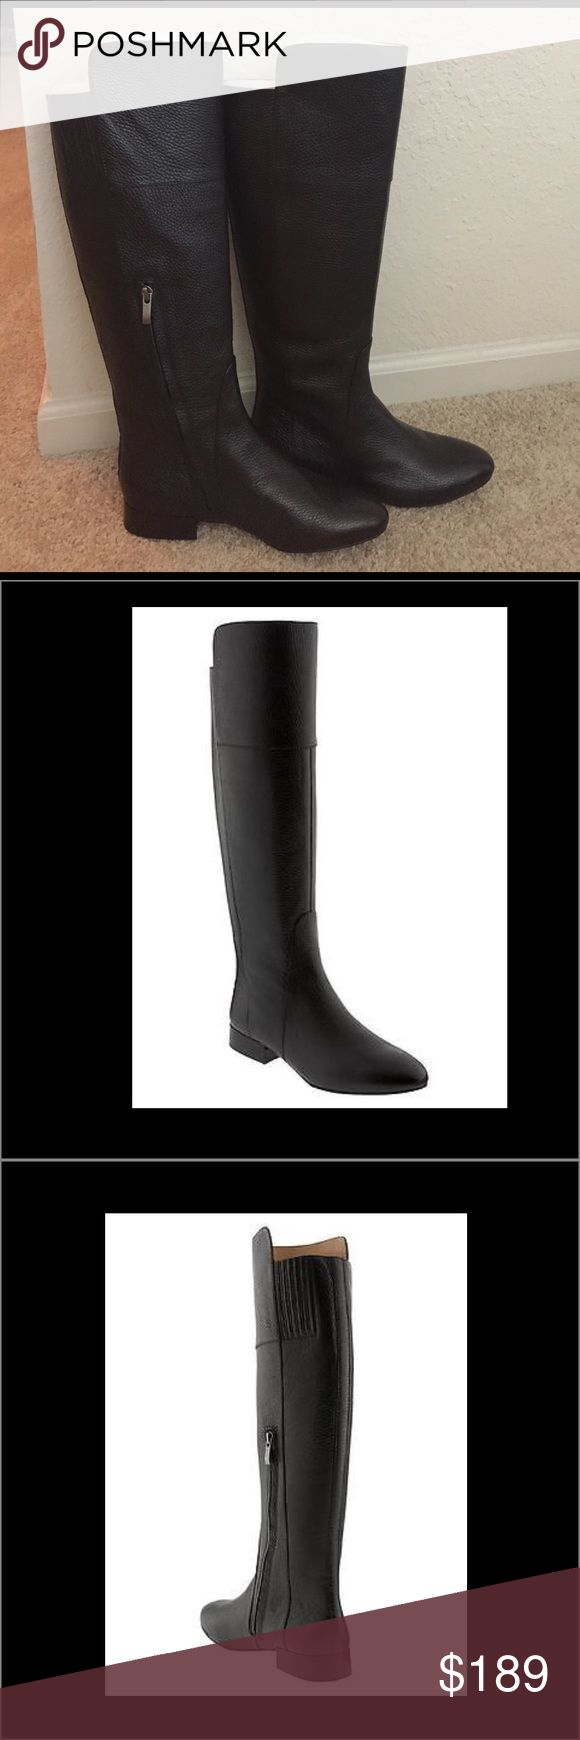 Brand new Banana Republic Fitz boot size 7.5 Brand new never worn Banana Republic Italian black leather over the knee Fitz boot size 7.5. Limited collection hard to find Originally $228. Soft leather with side zip closure. Banana Republic Shoes Over the Knee Boots